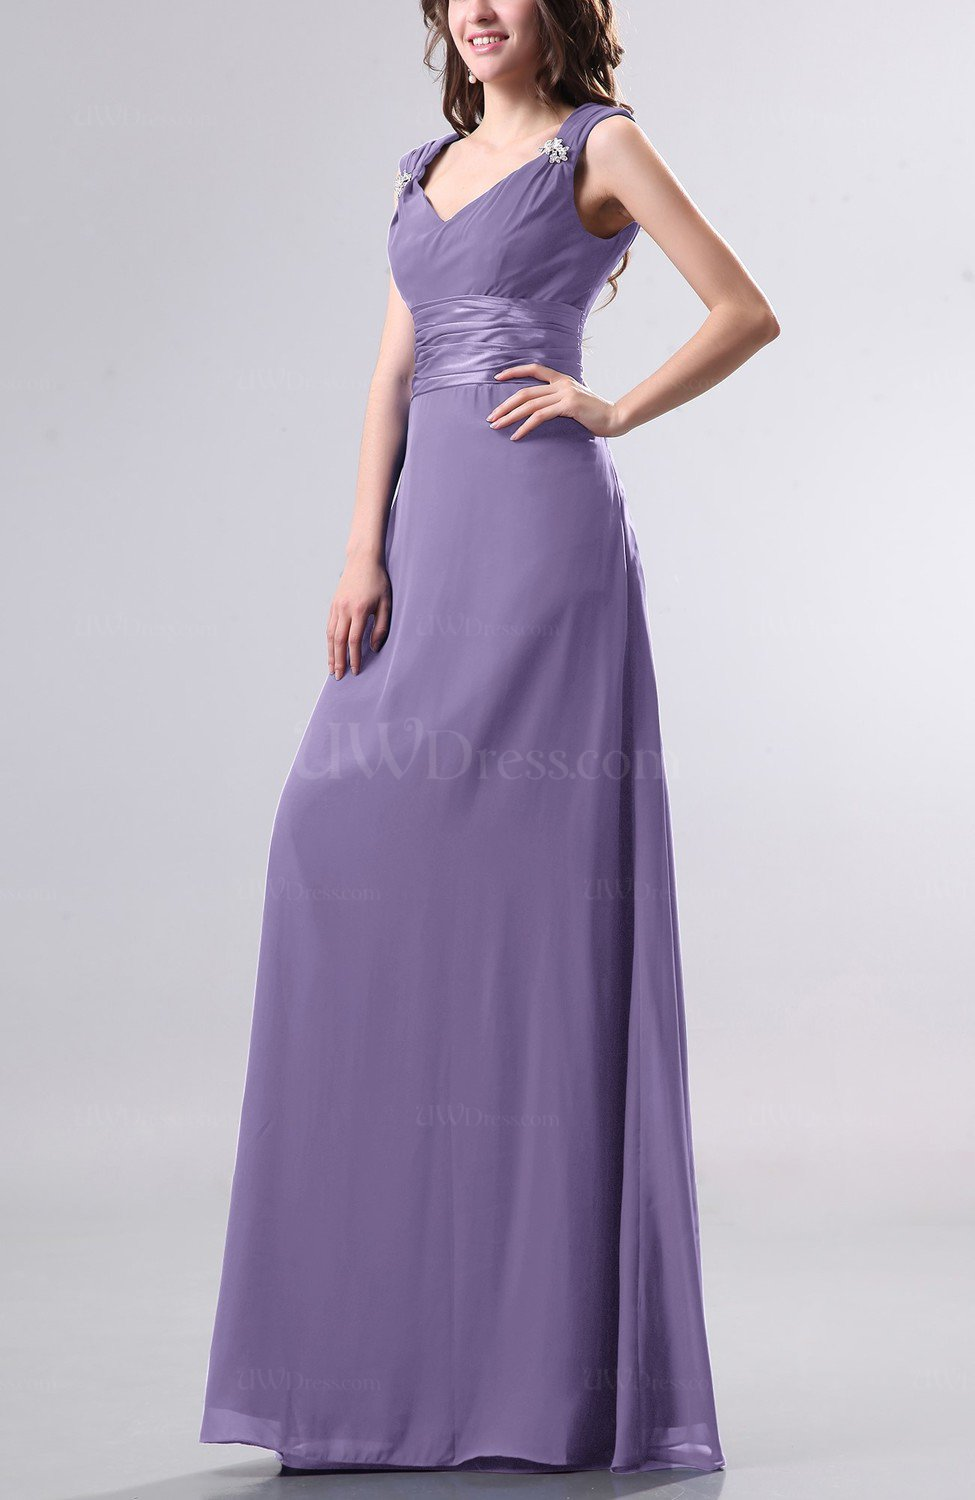 32592d4cb08 Chalk Violet Elegant Empire Thick Straps Chiffon Floor Length Ruching Evening  Dresses (Style D88210)